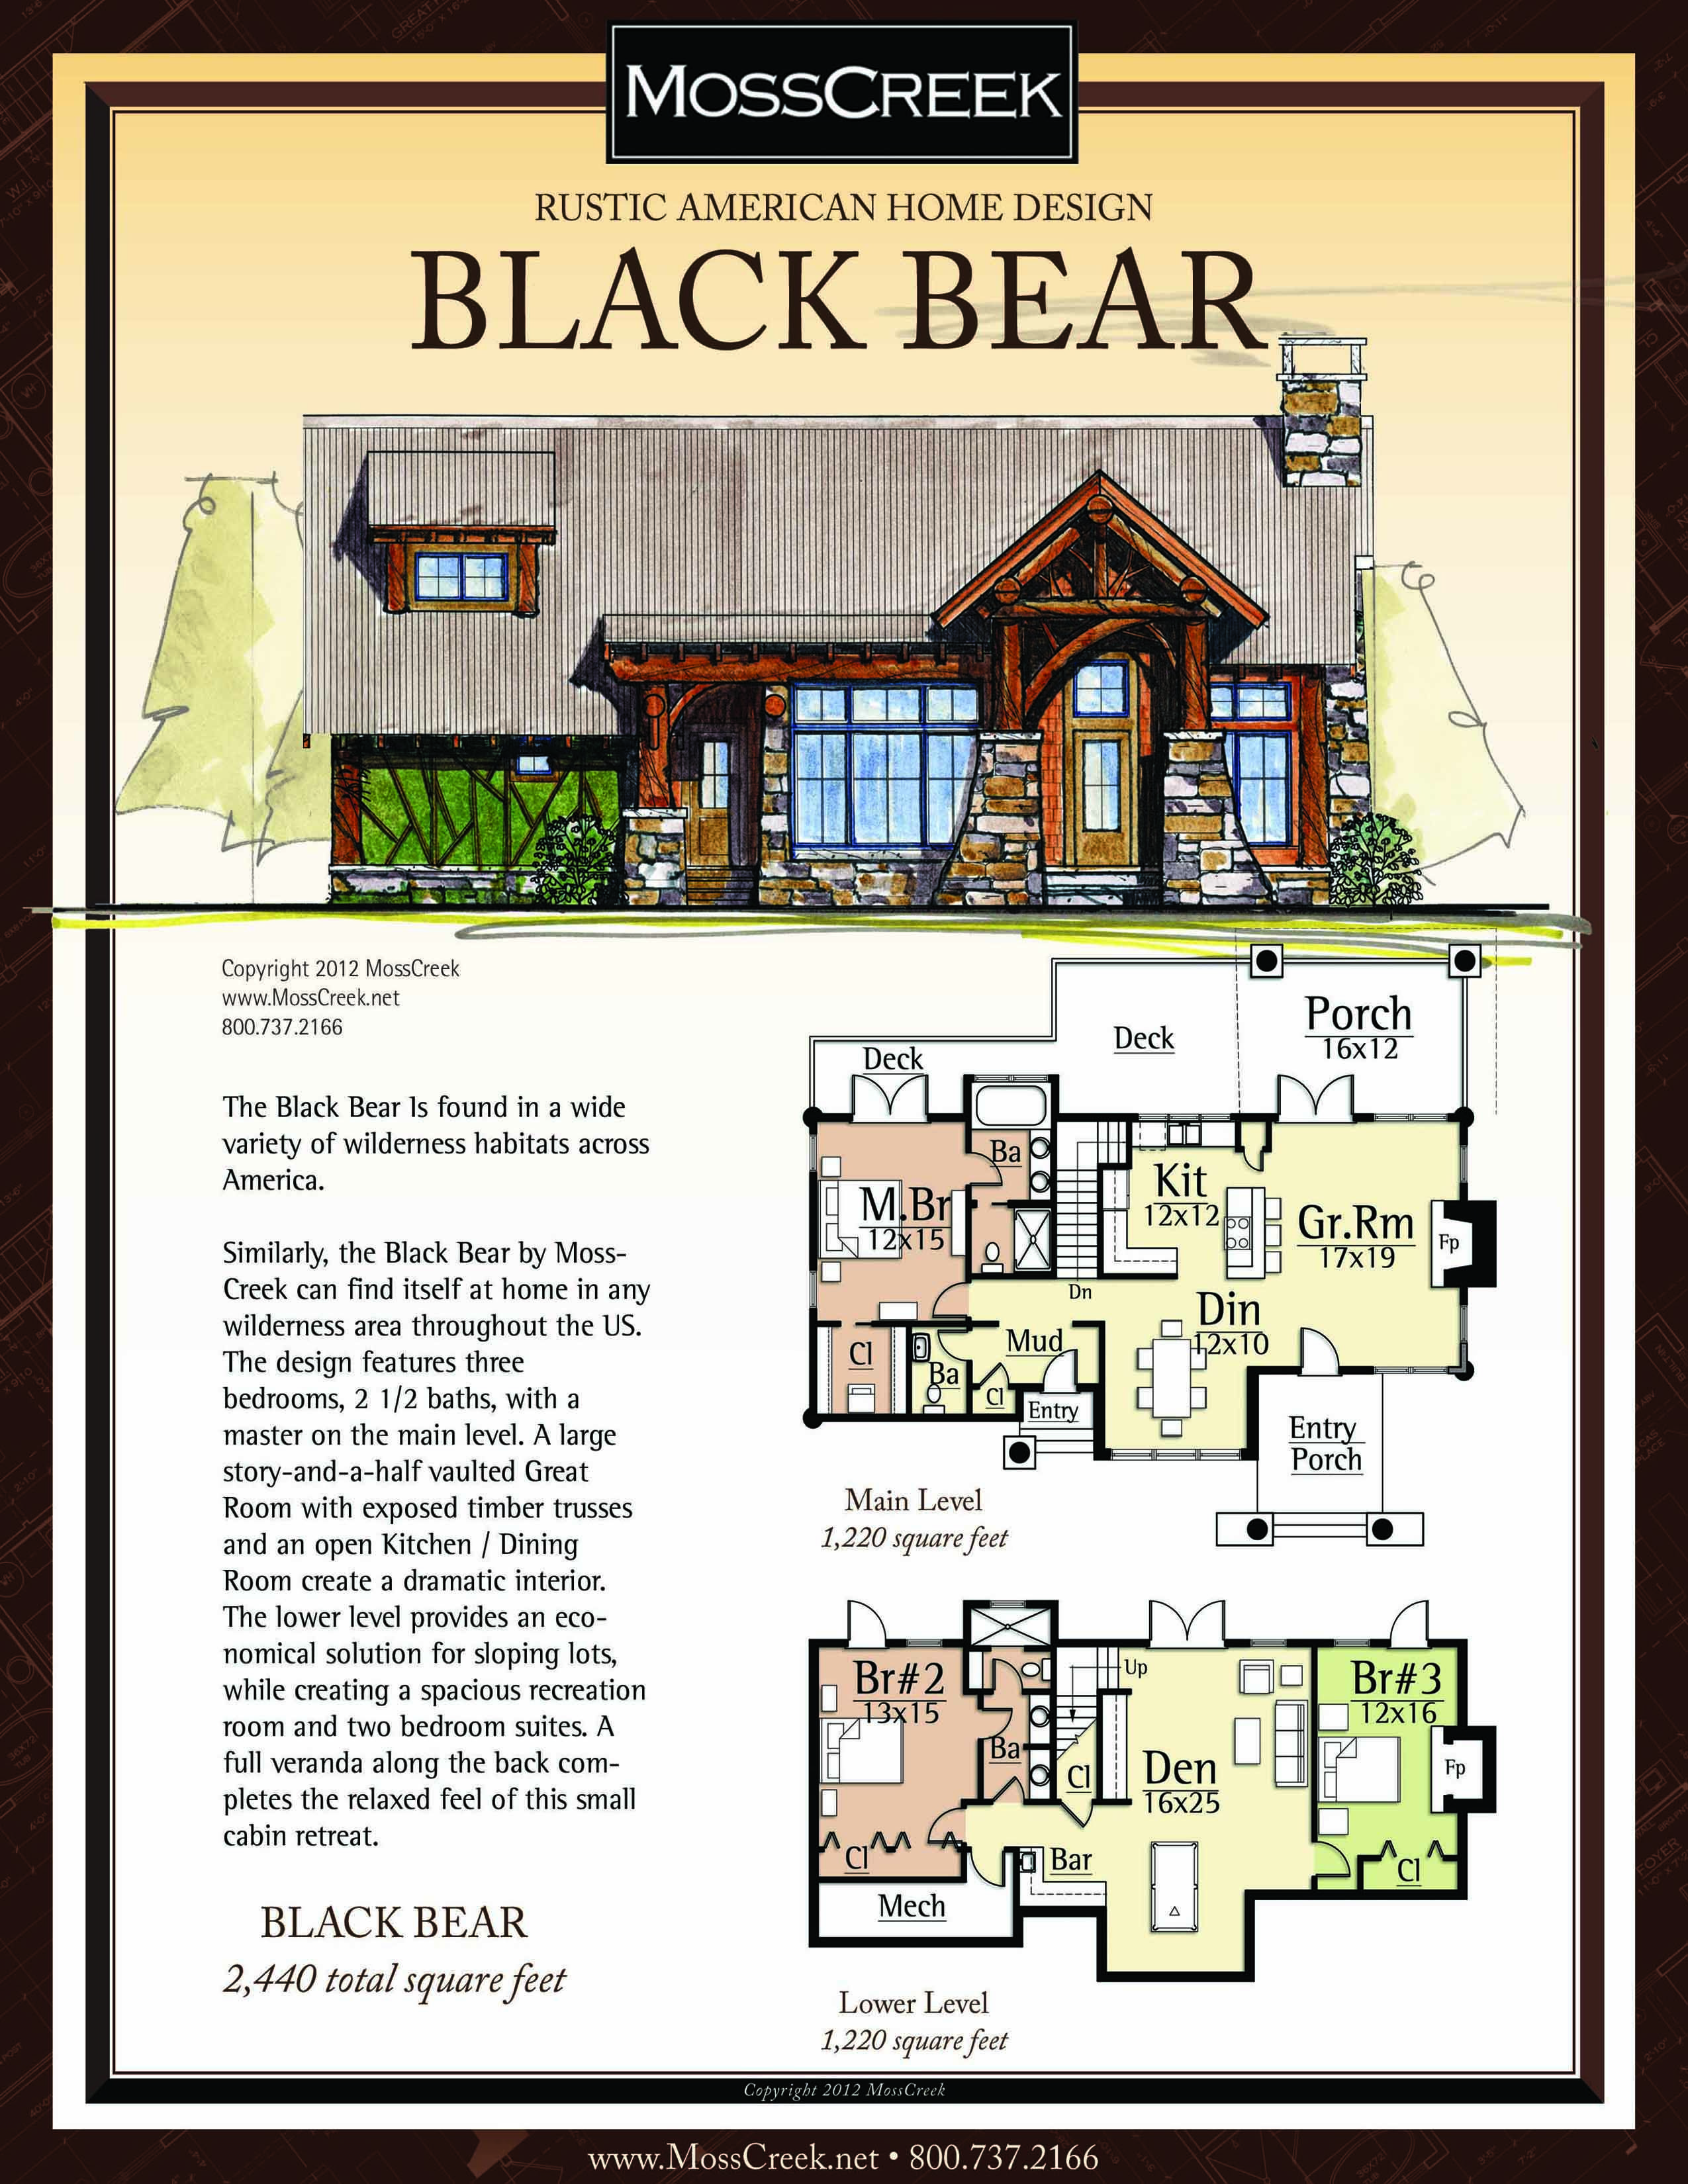 Luxury Log Homes Timber Frame Homes American Home Design Rustic House Plans Log Home Plans